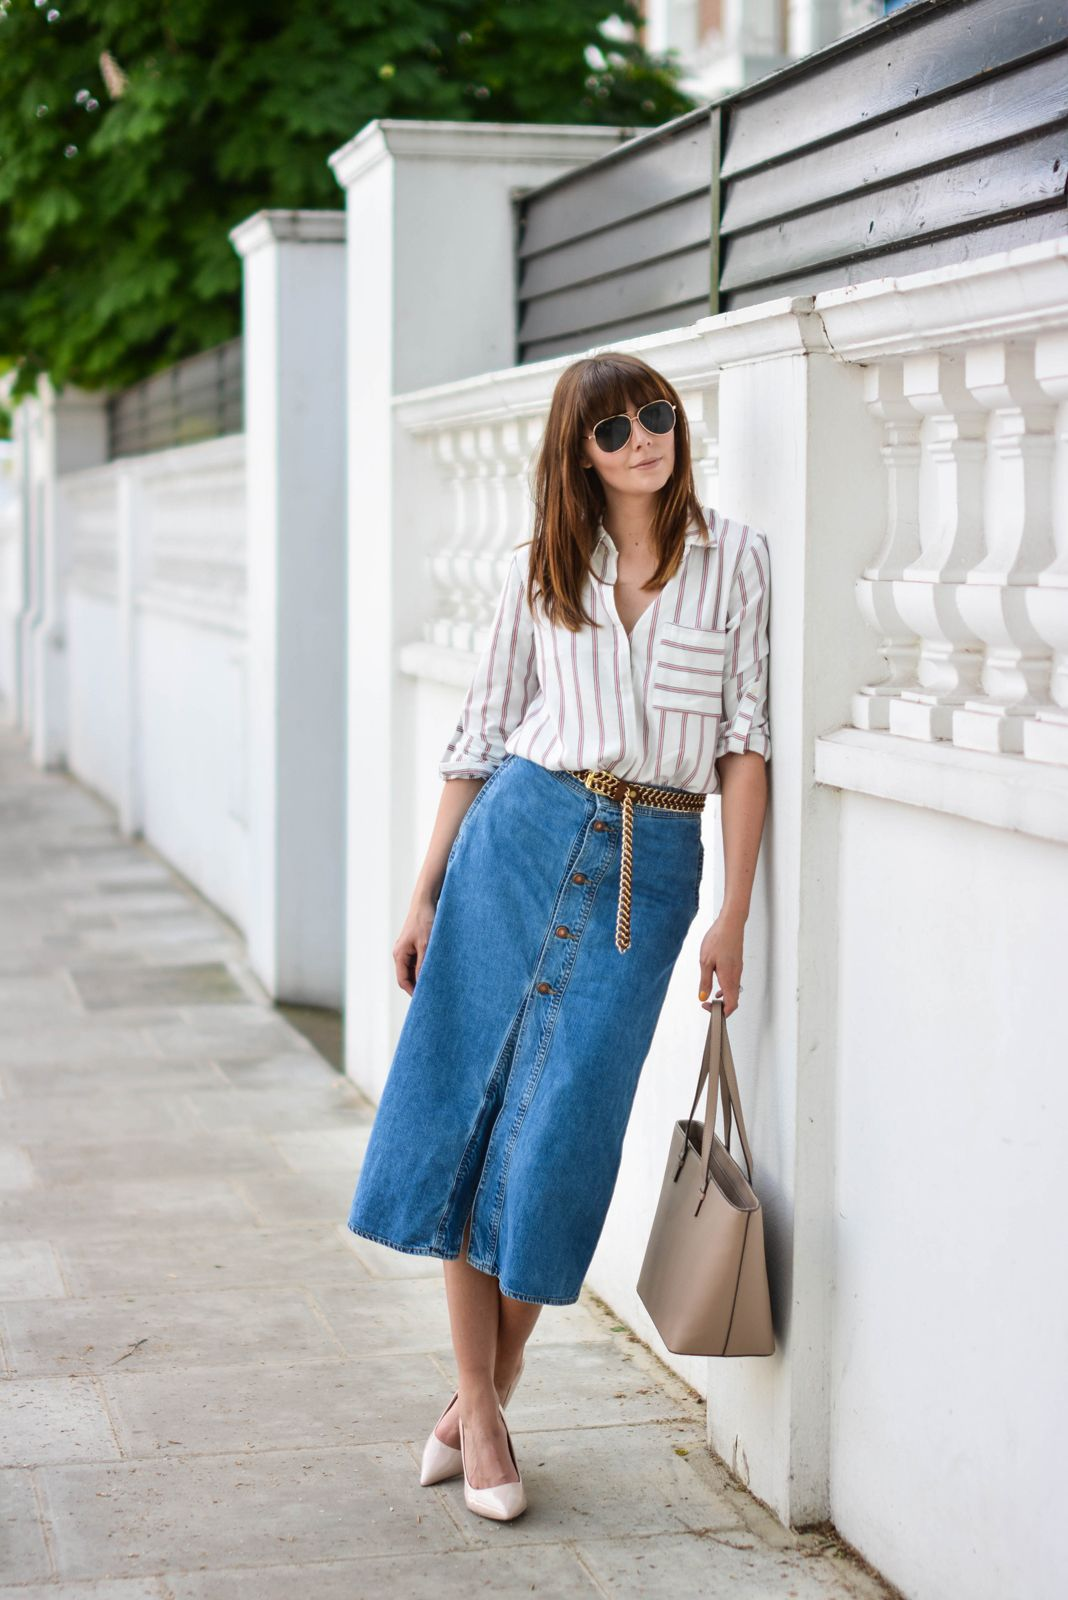 eba4649f7c6 EJSTYLE - Emma Hill wears Zara denim a line button midi skirt